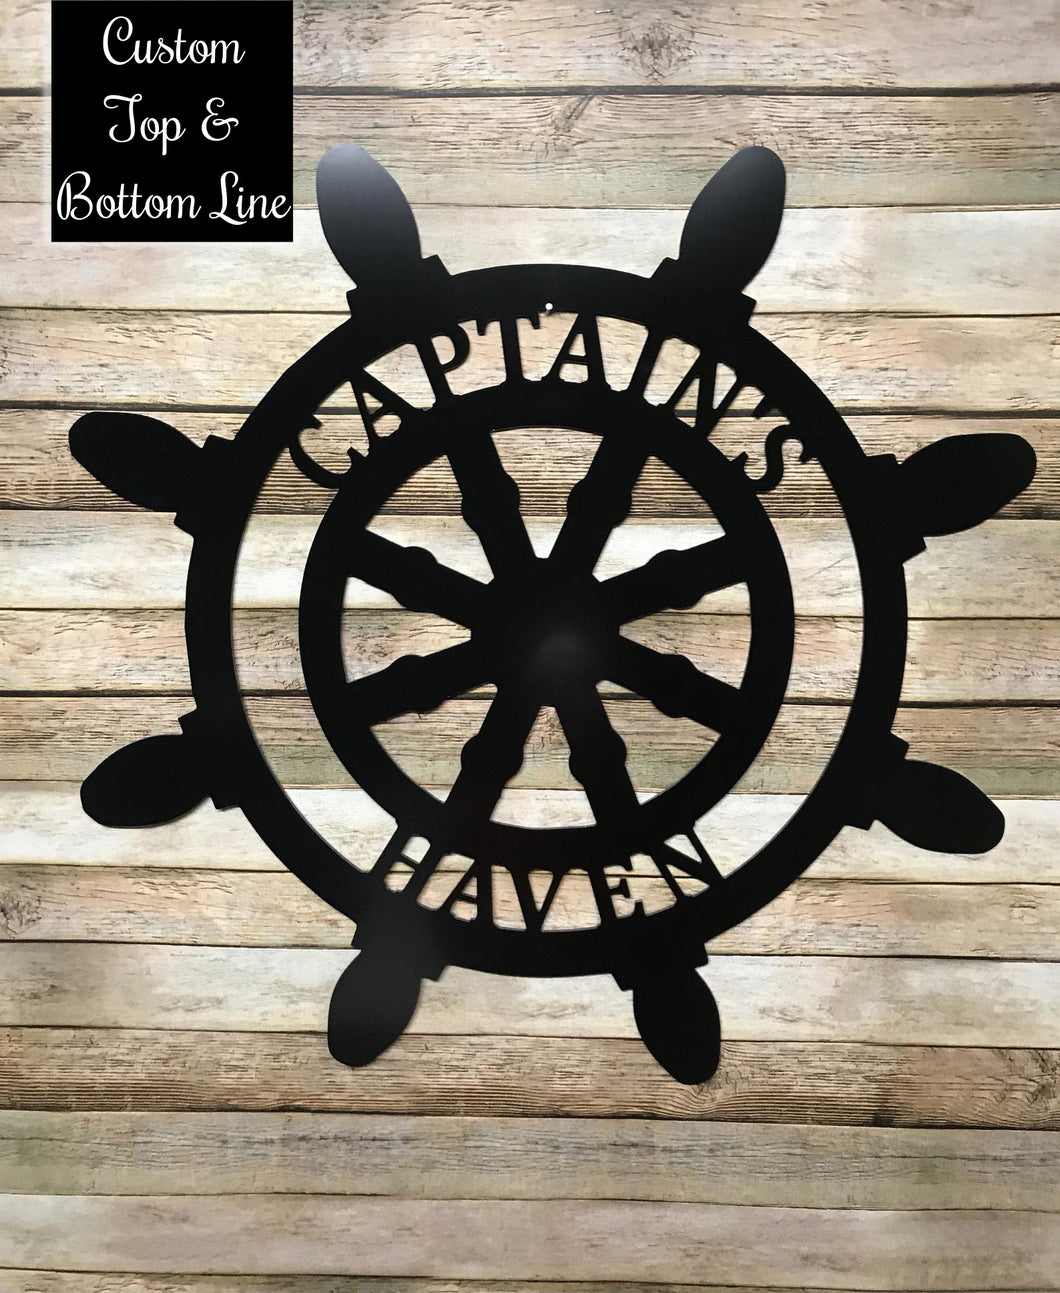 Nautical Decor - Sailboat Wheel - Customized Beach House Decor - 24